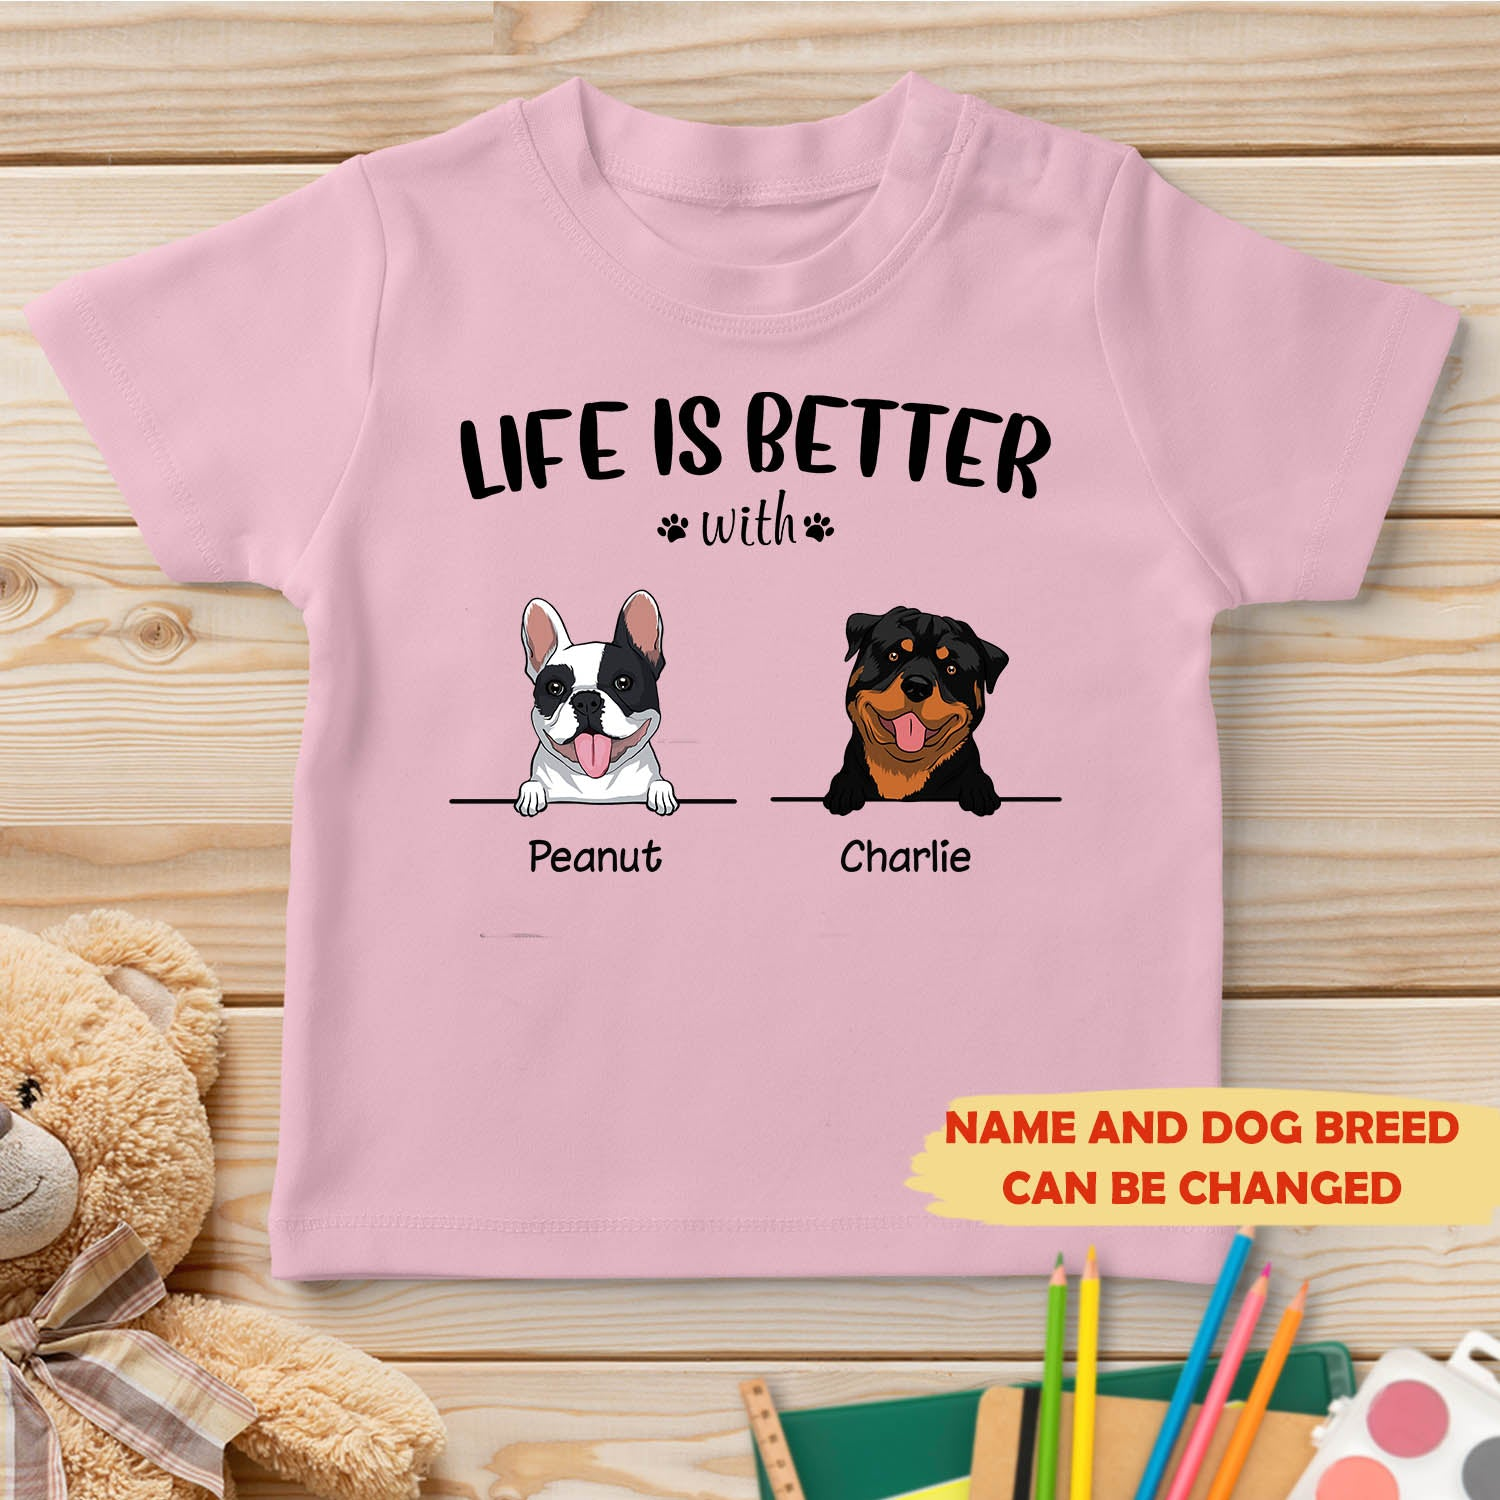 Life is better - Personalized Classic Youth T-shirt